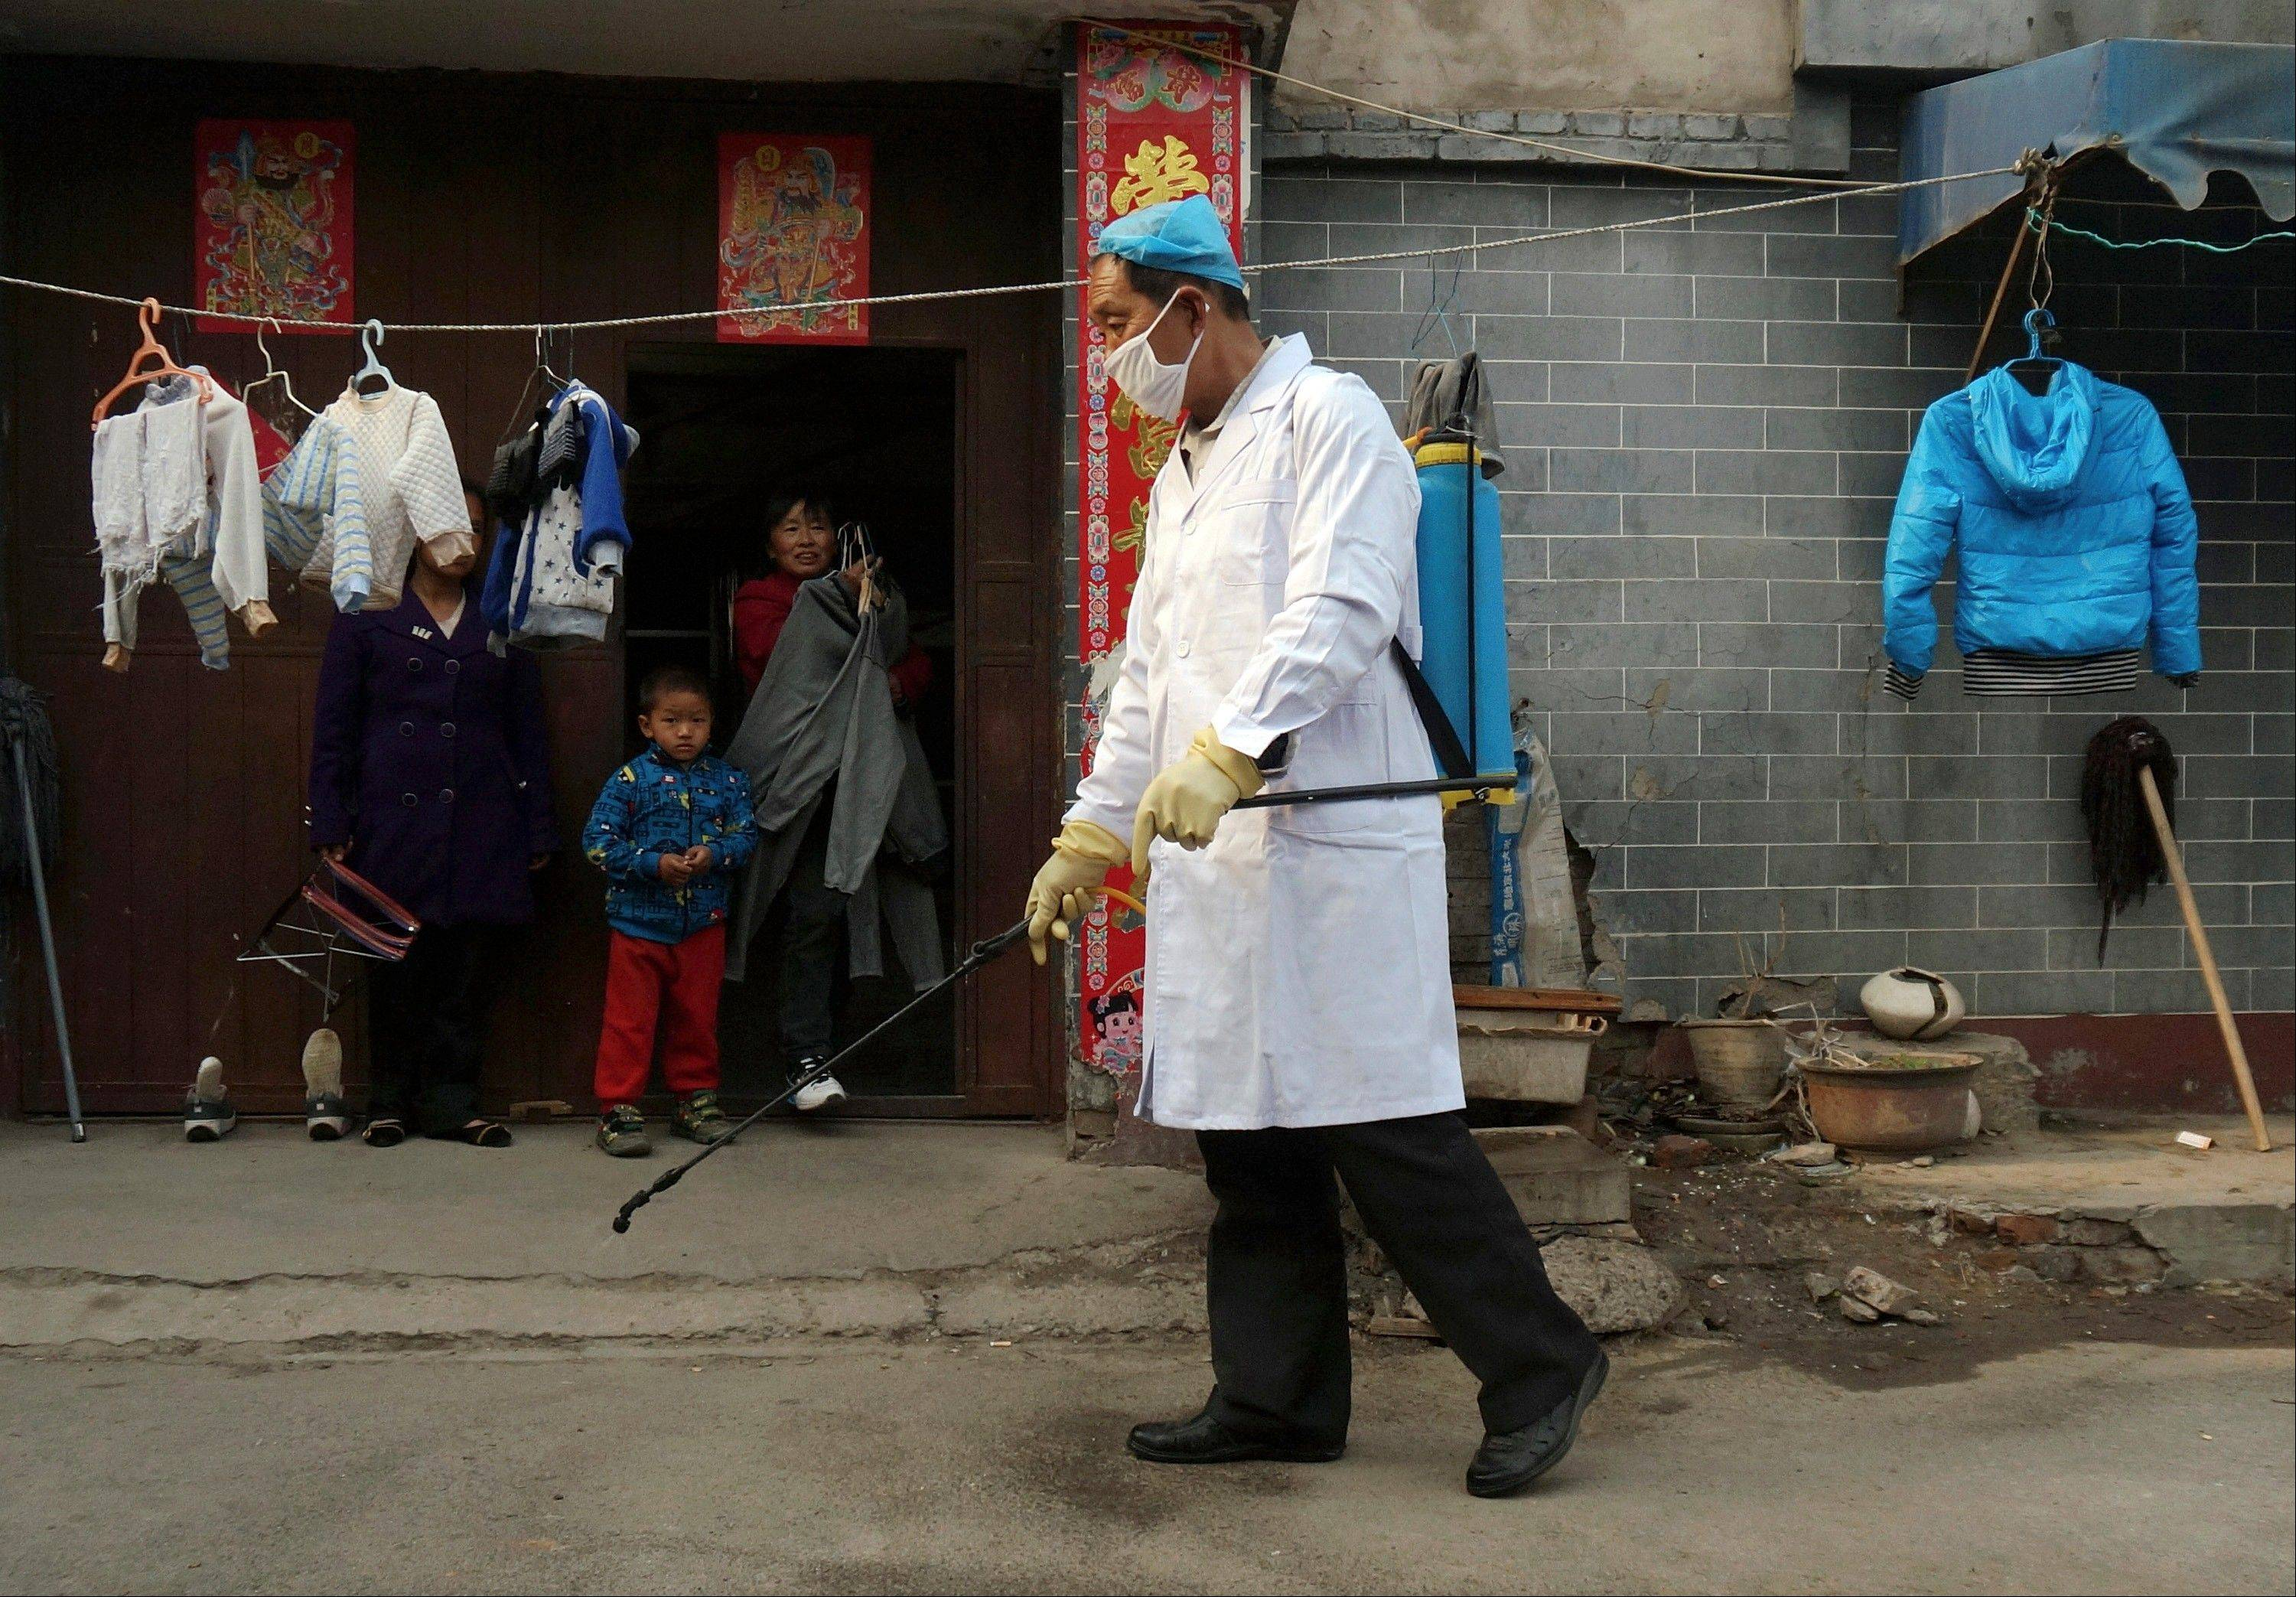 A family watches a worker spray disinfectant in Naidong village, where a boy tested positive for the H7N9 virus, in Beijing Monday. The new case of bird flu in China's capital, a 4-year-old boy who displayed no symptoms, is adding to the unknowns about the latest outbreak that has caused 63 confirmed cases and 14 deaths, health officials said Monday.